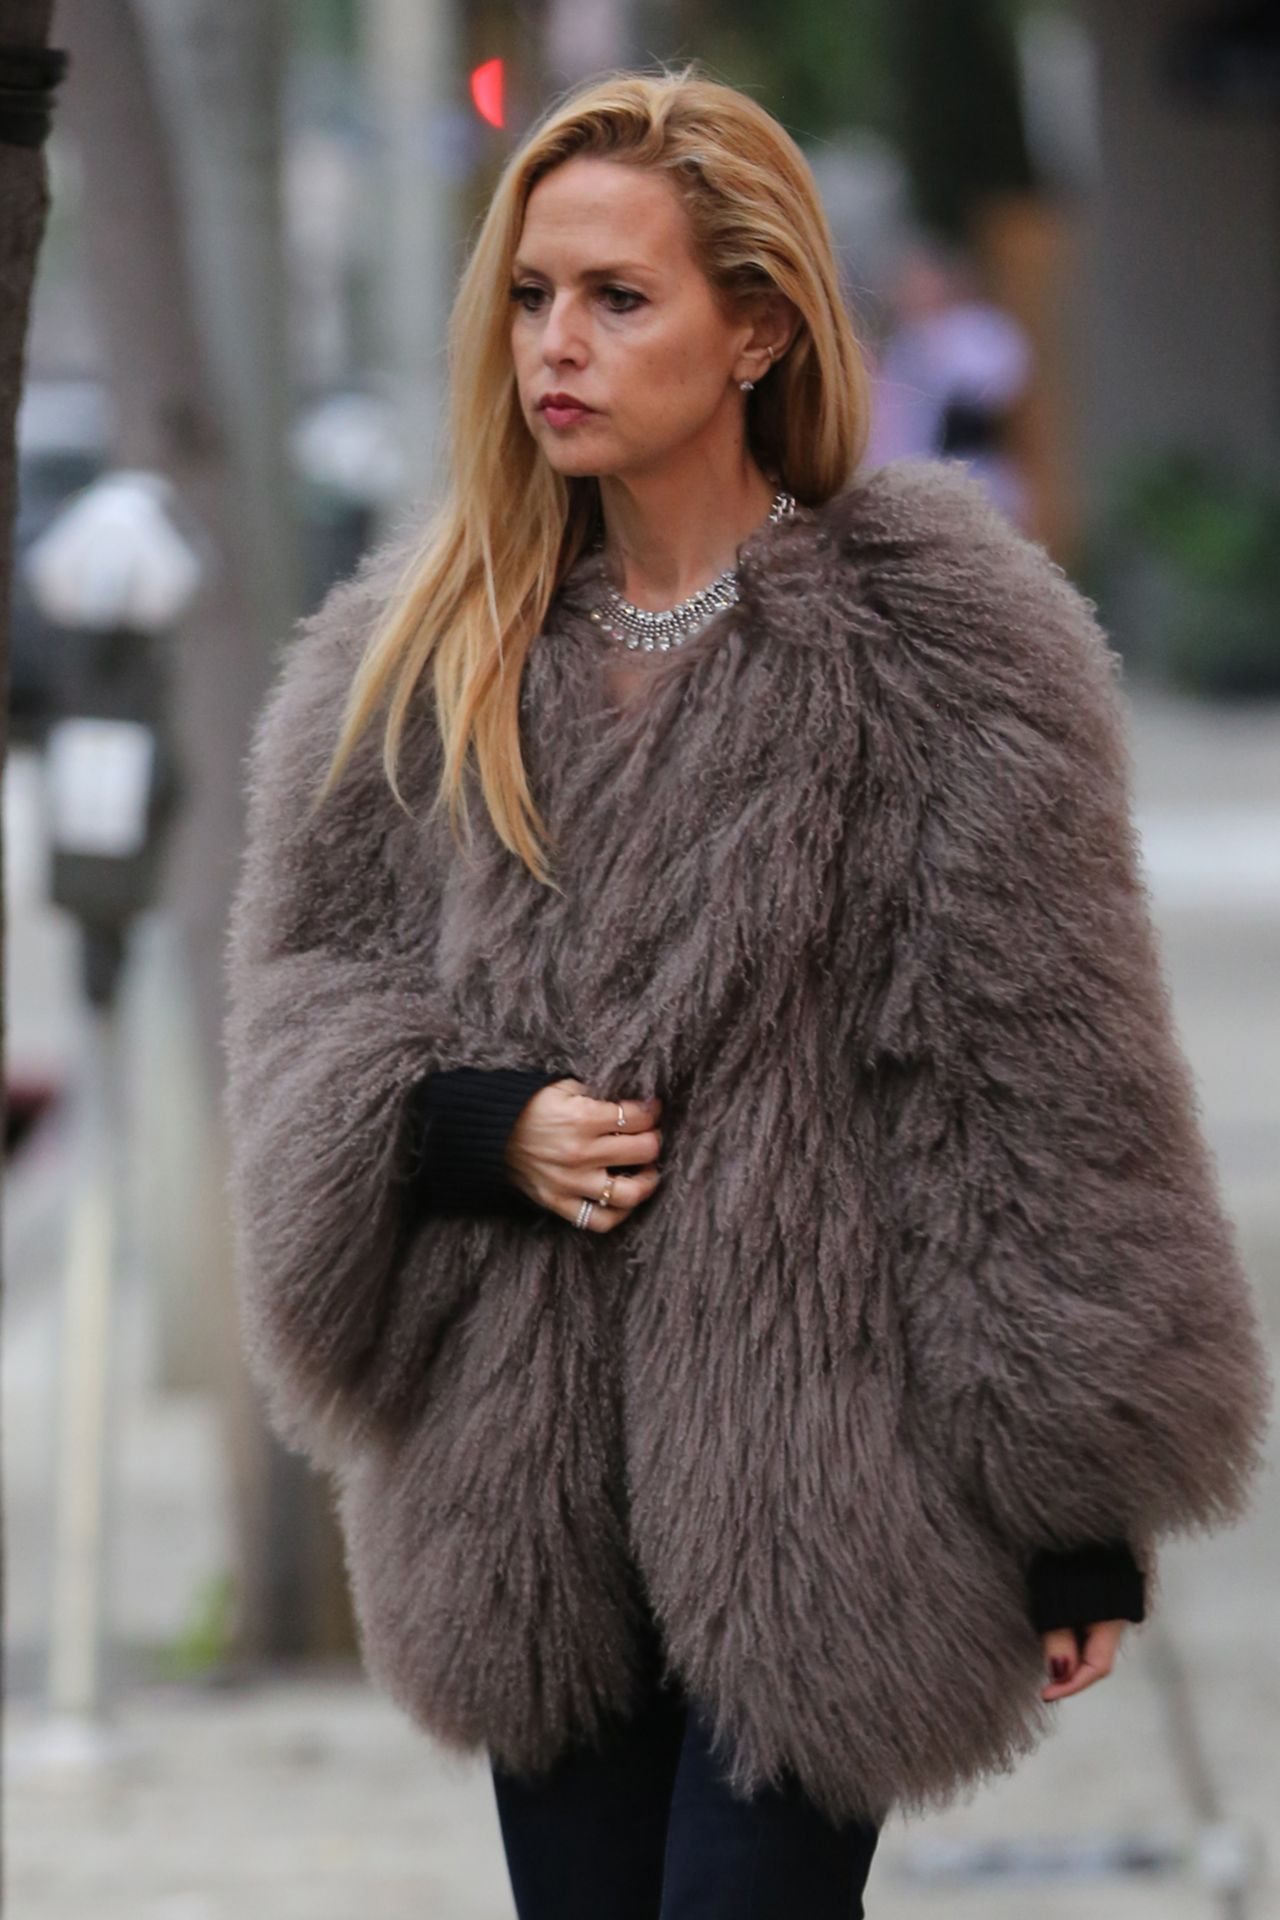 Rachel Zoe Latest Photos - CelebMafia